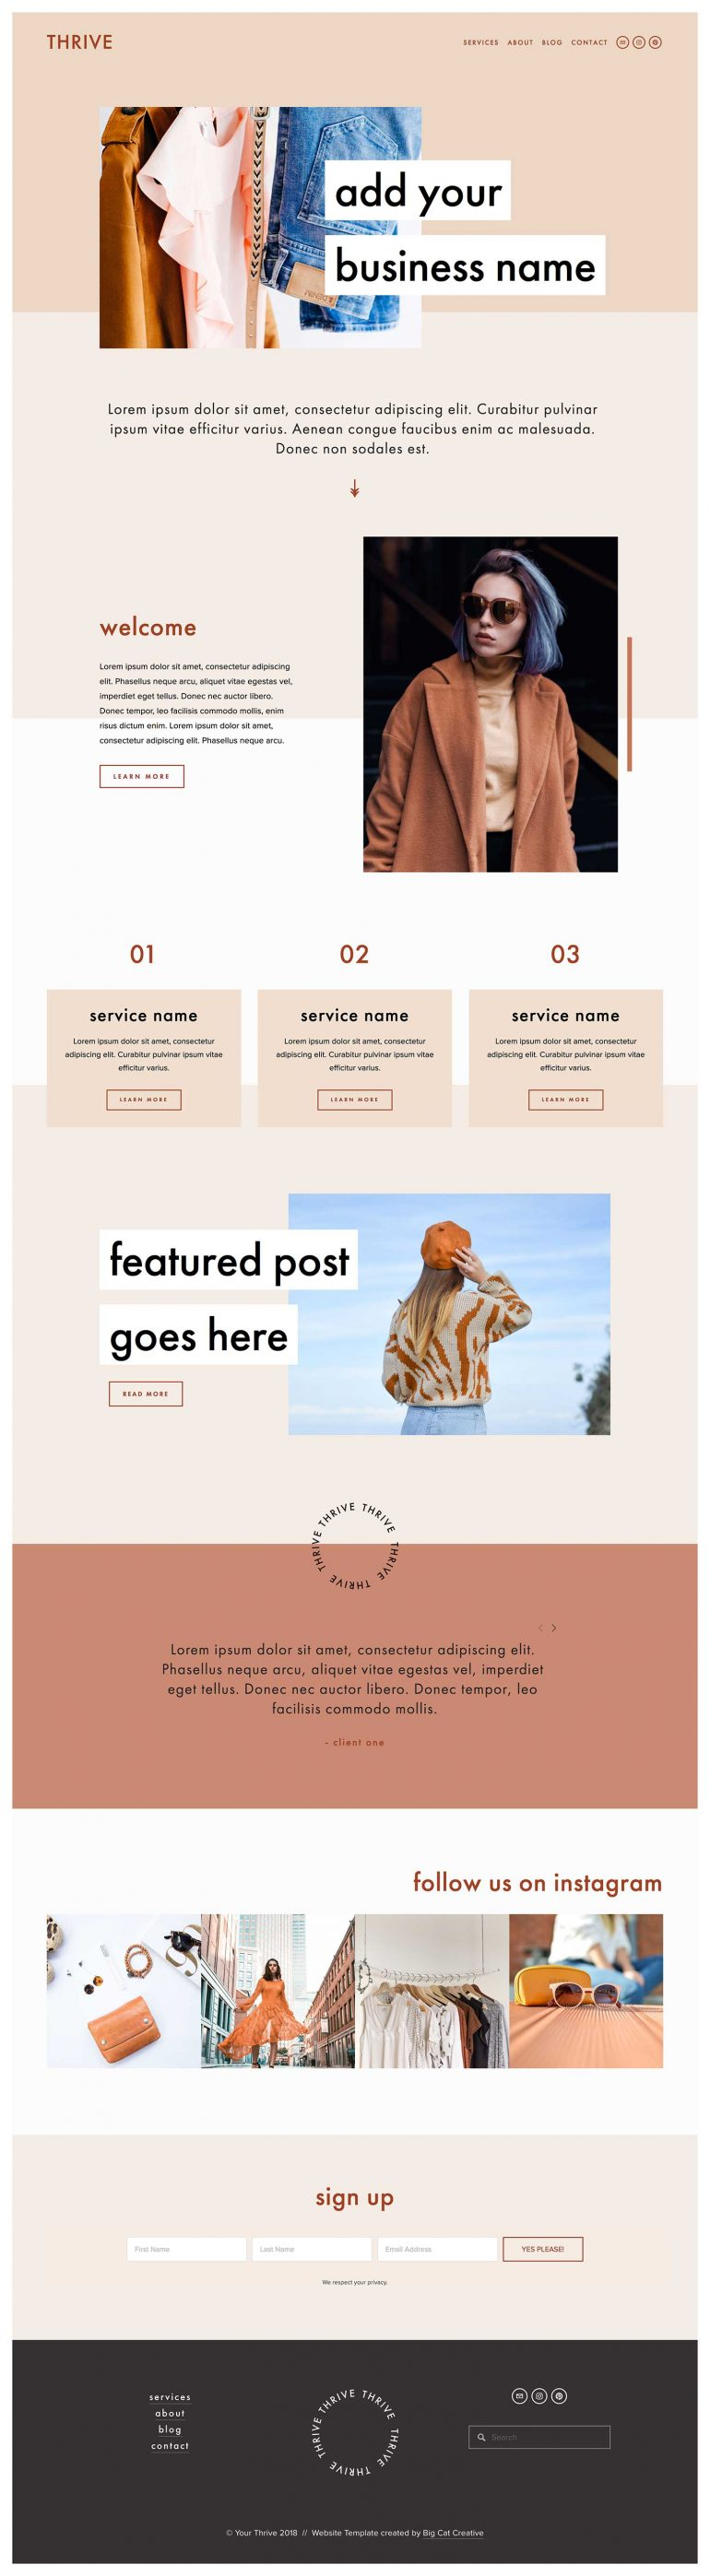 Thrive Squarespace Template